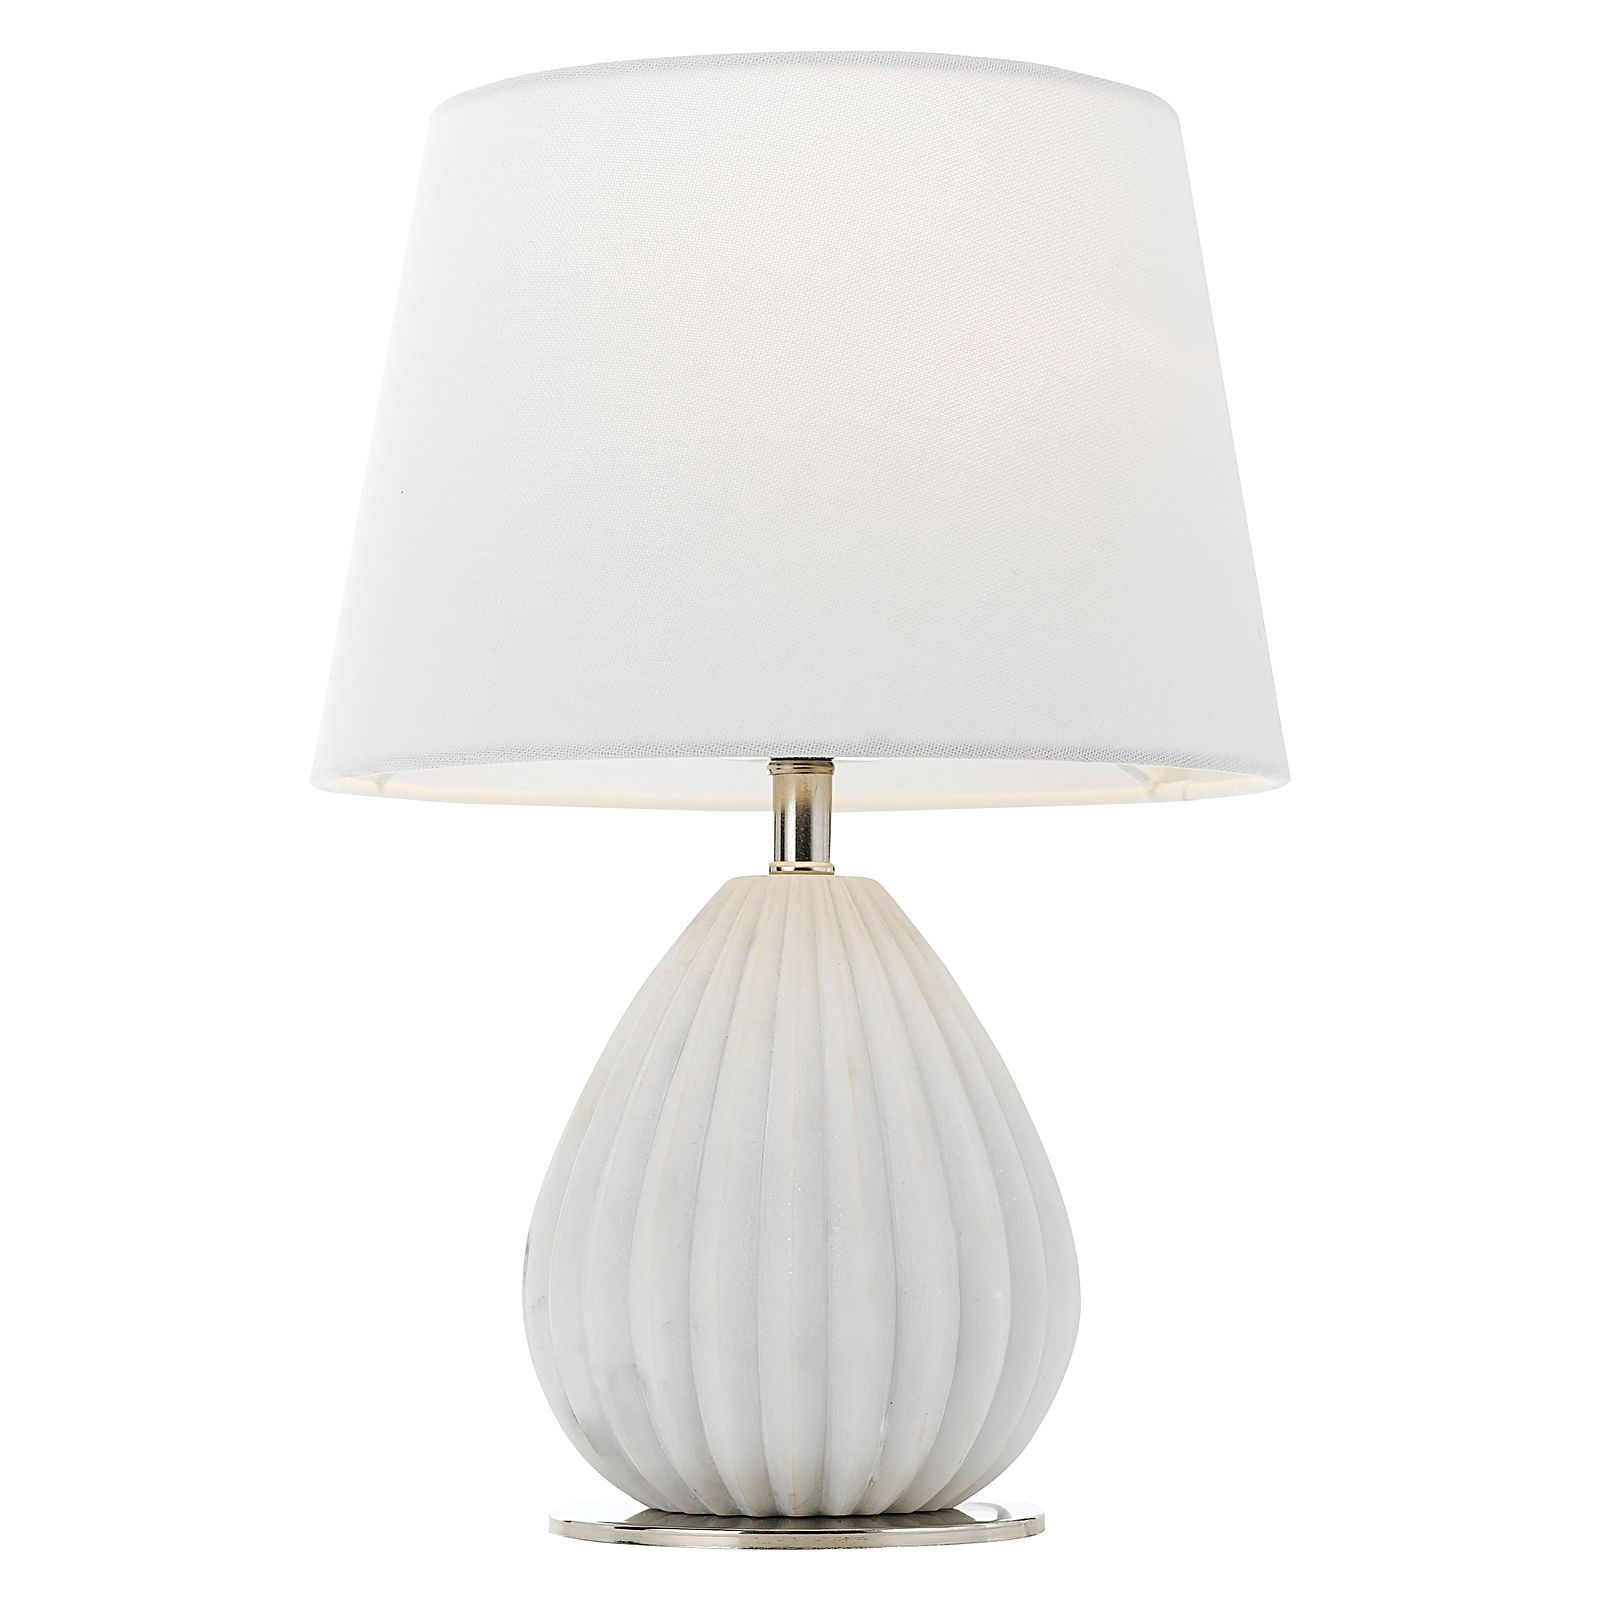 Orson Table Lamp Throughout Broadmeadow Glam Accent Wall Mirrors (View 19 of 20)